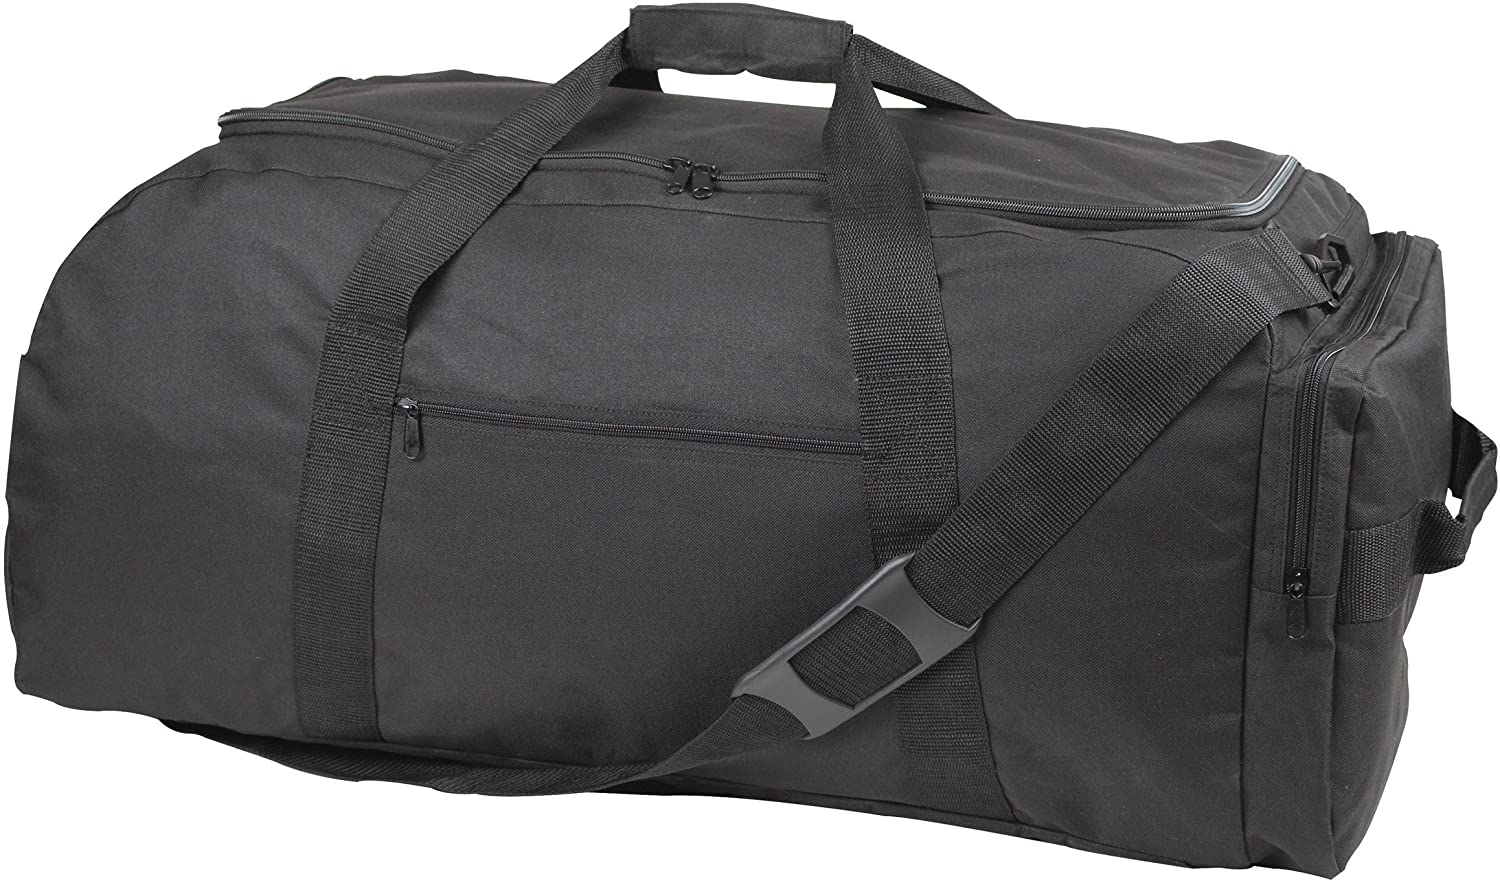 Extra Large Duffle Bag Super intense SALE Opening large release sale Outdoors Ba Duffel Turns Into Sports